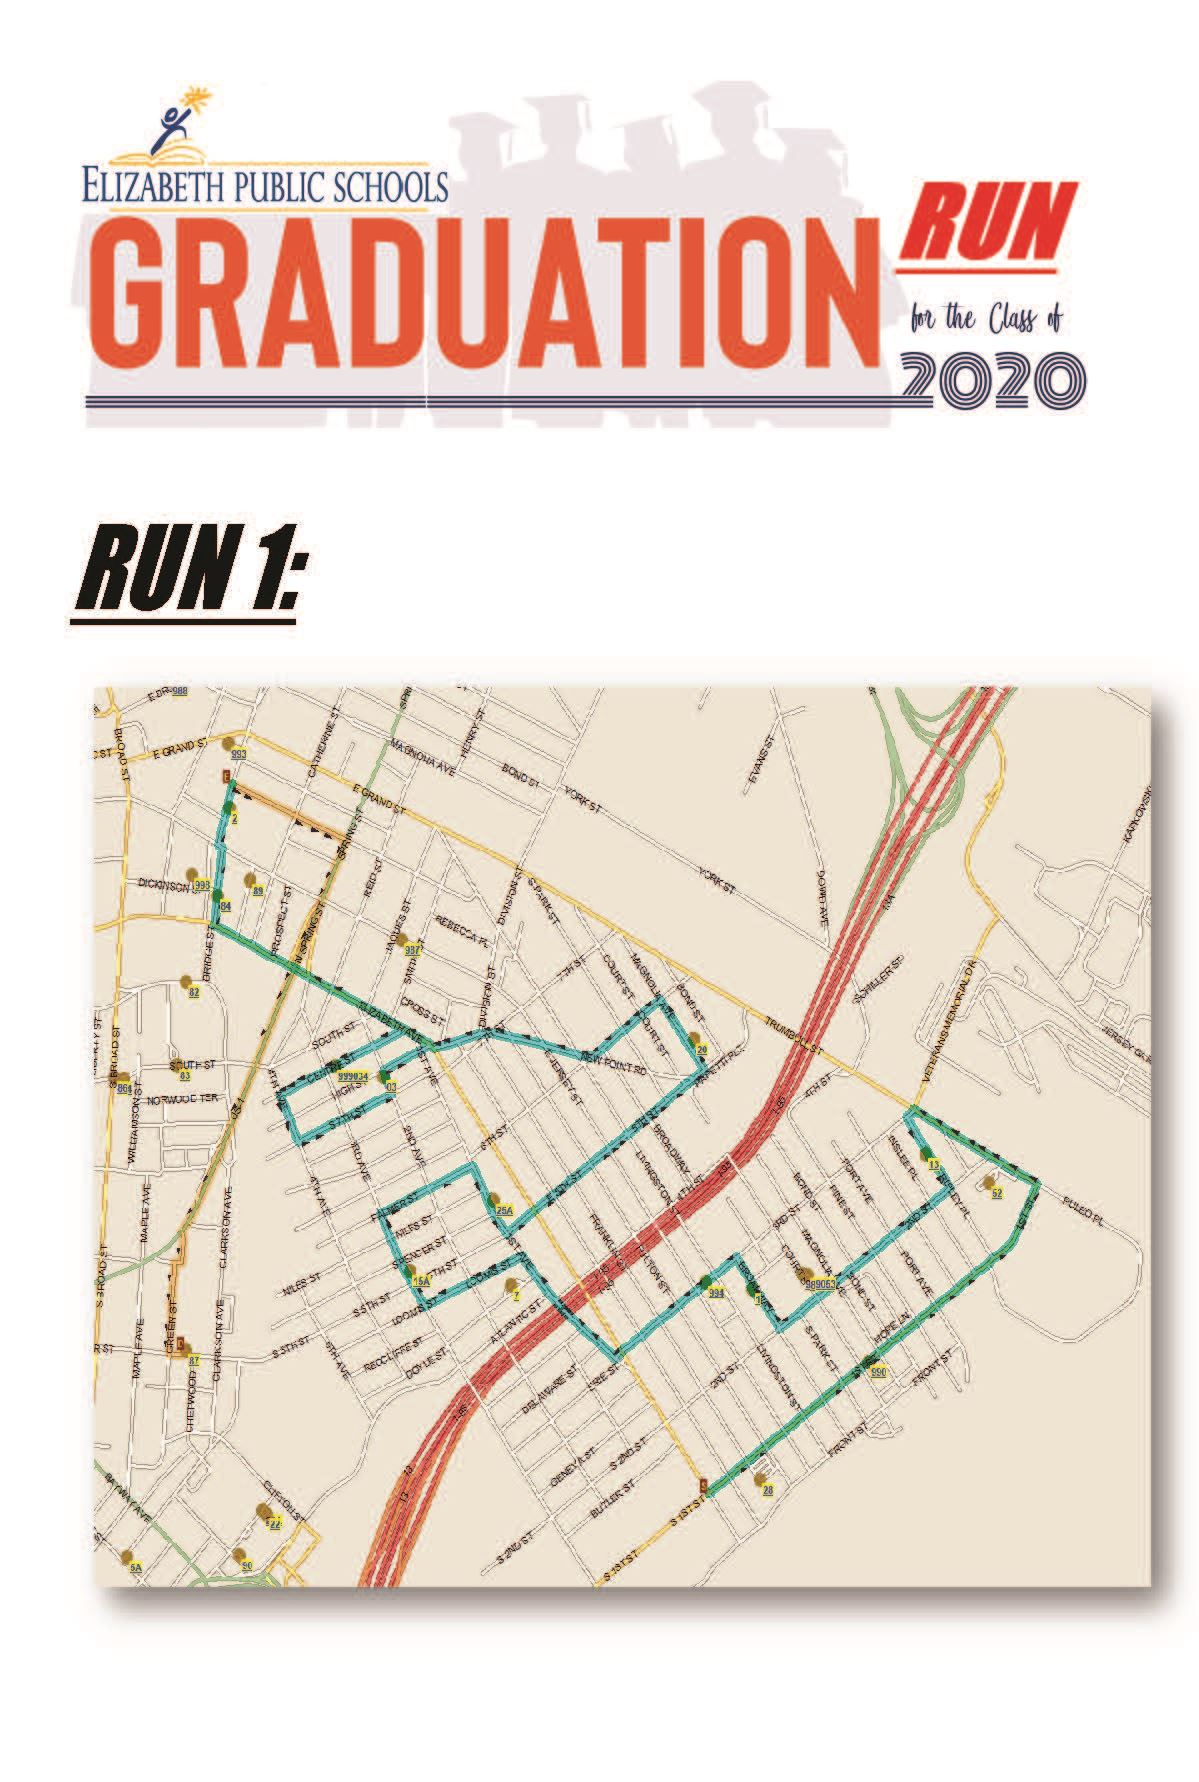 Graduation Run/Parade